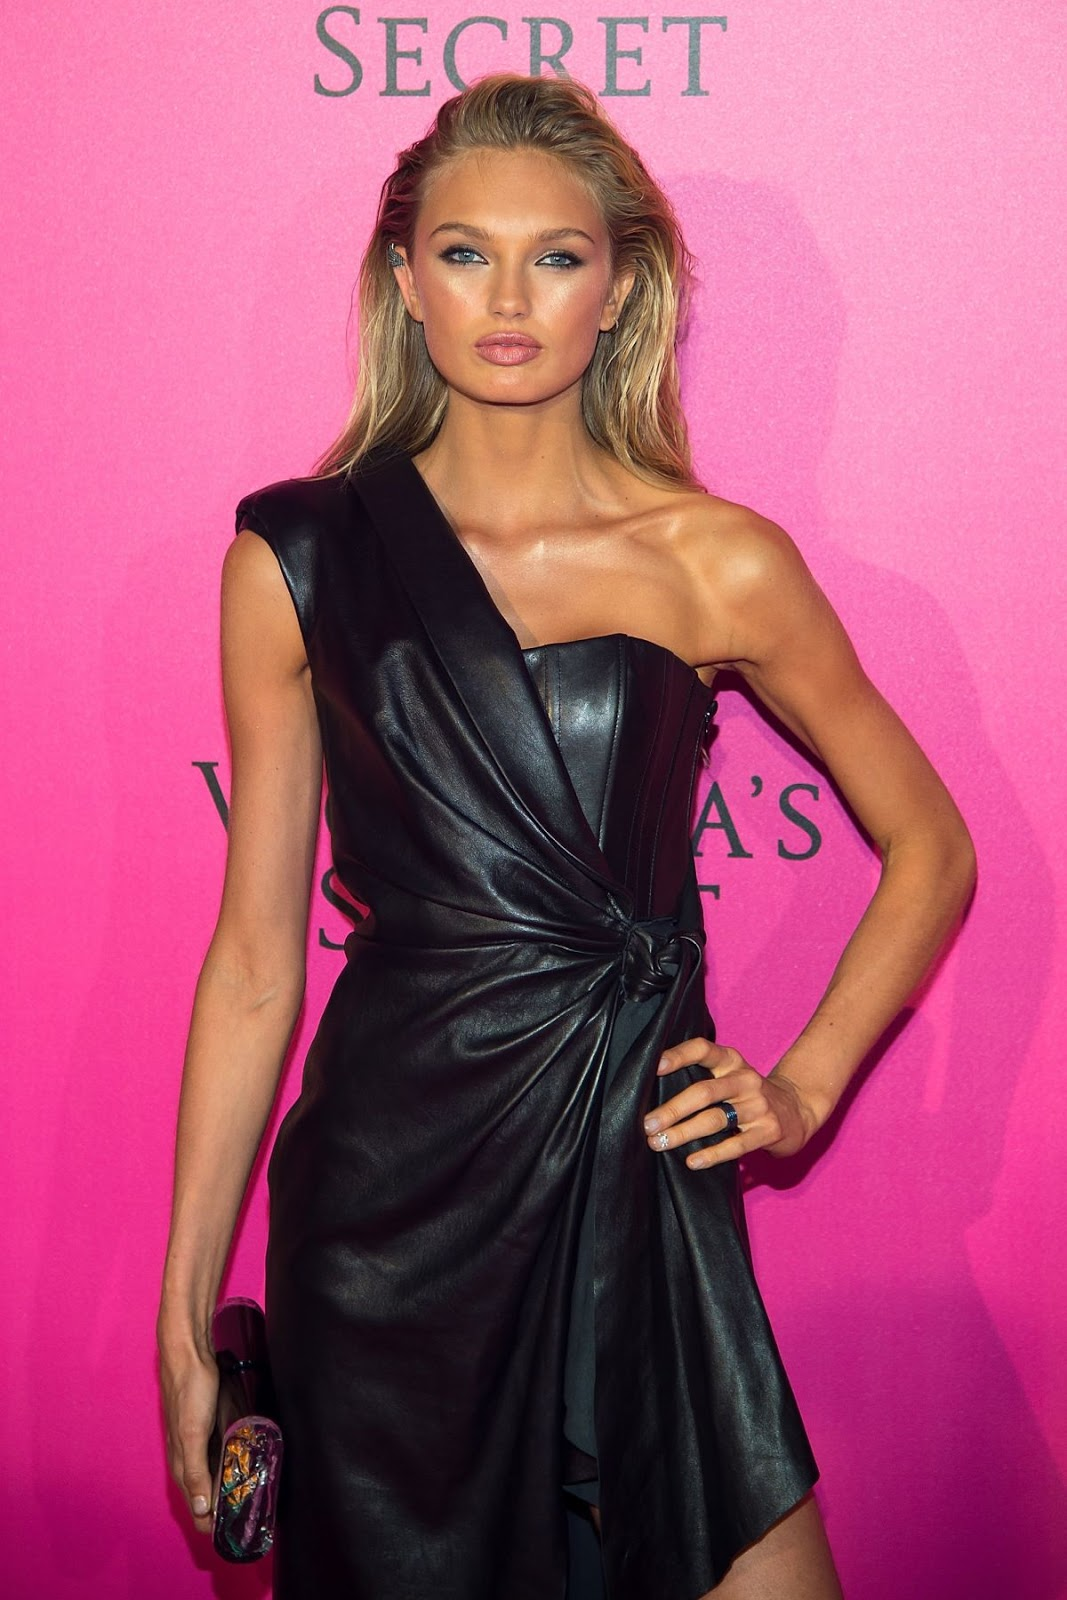 Lovely Ladies in Leather: Romee Strijd in a leather dress